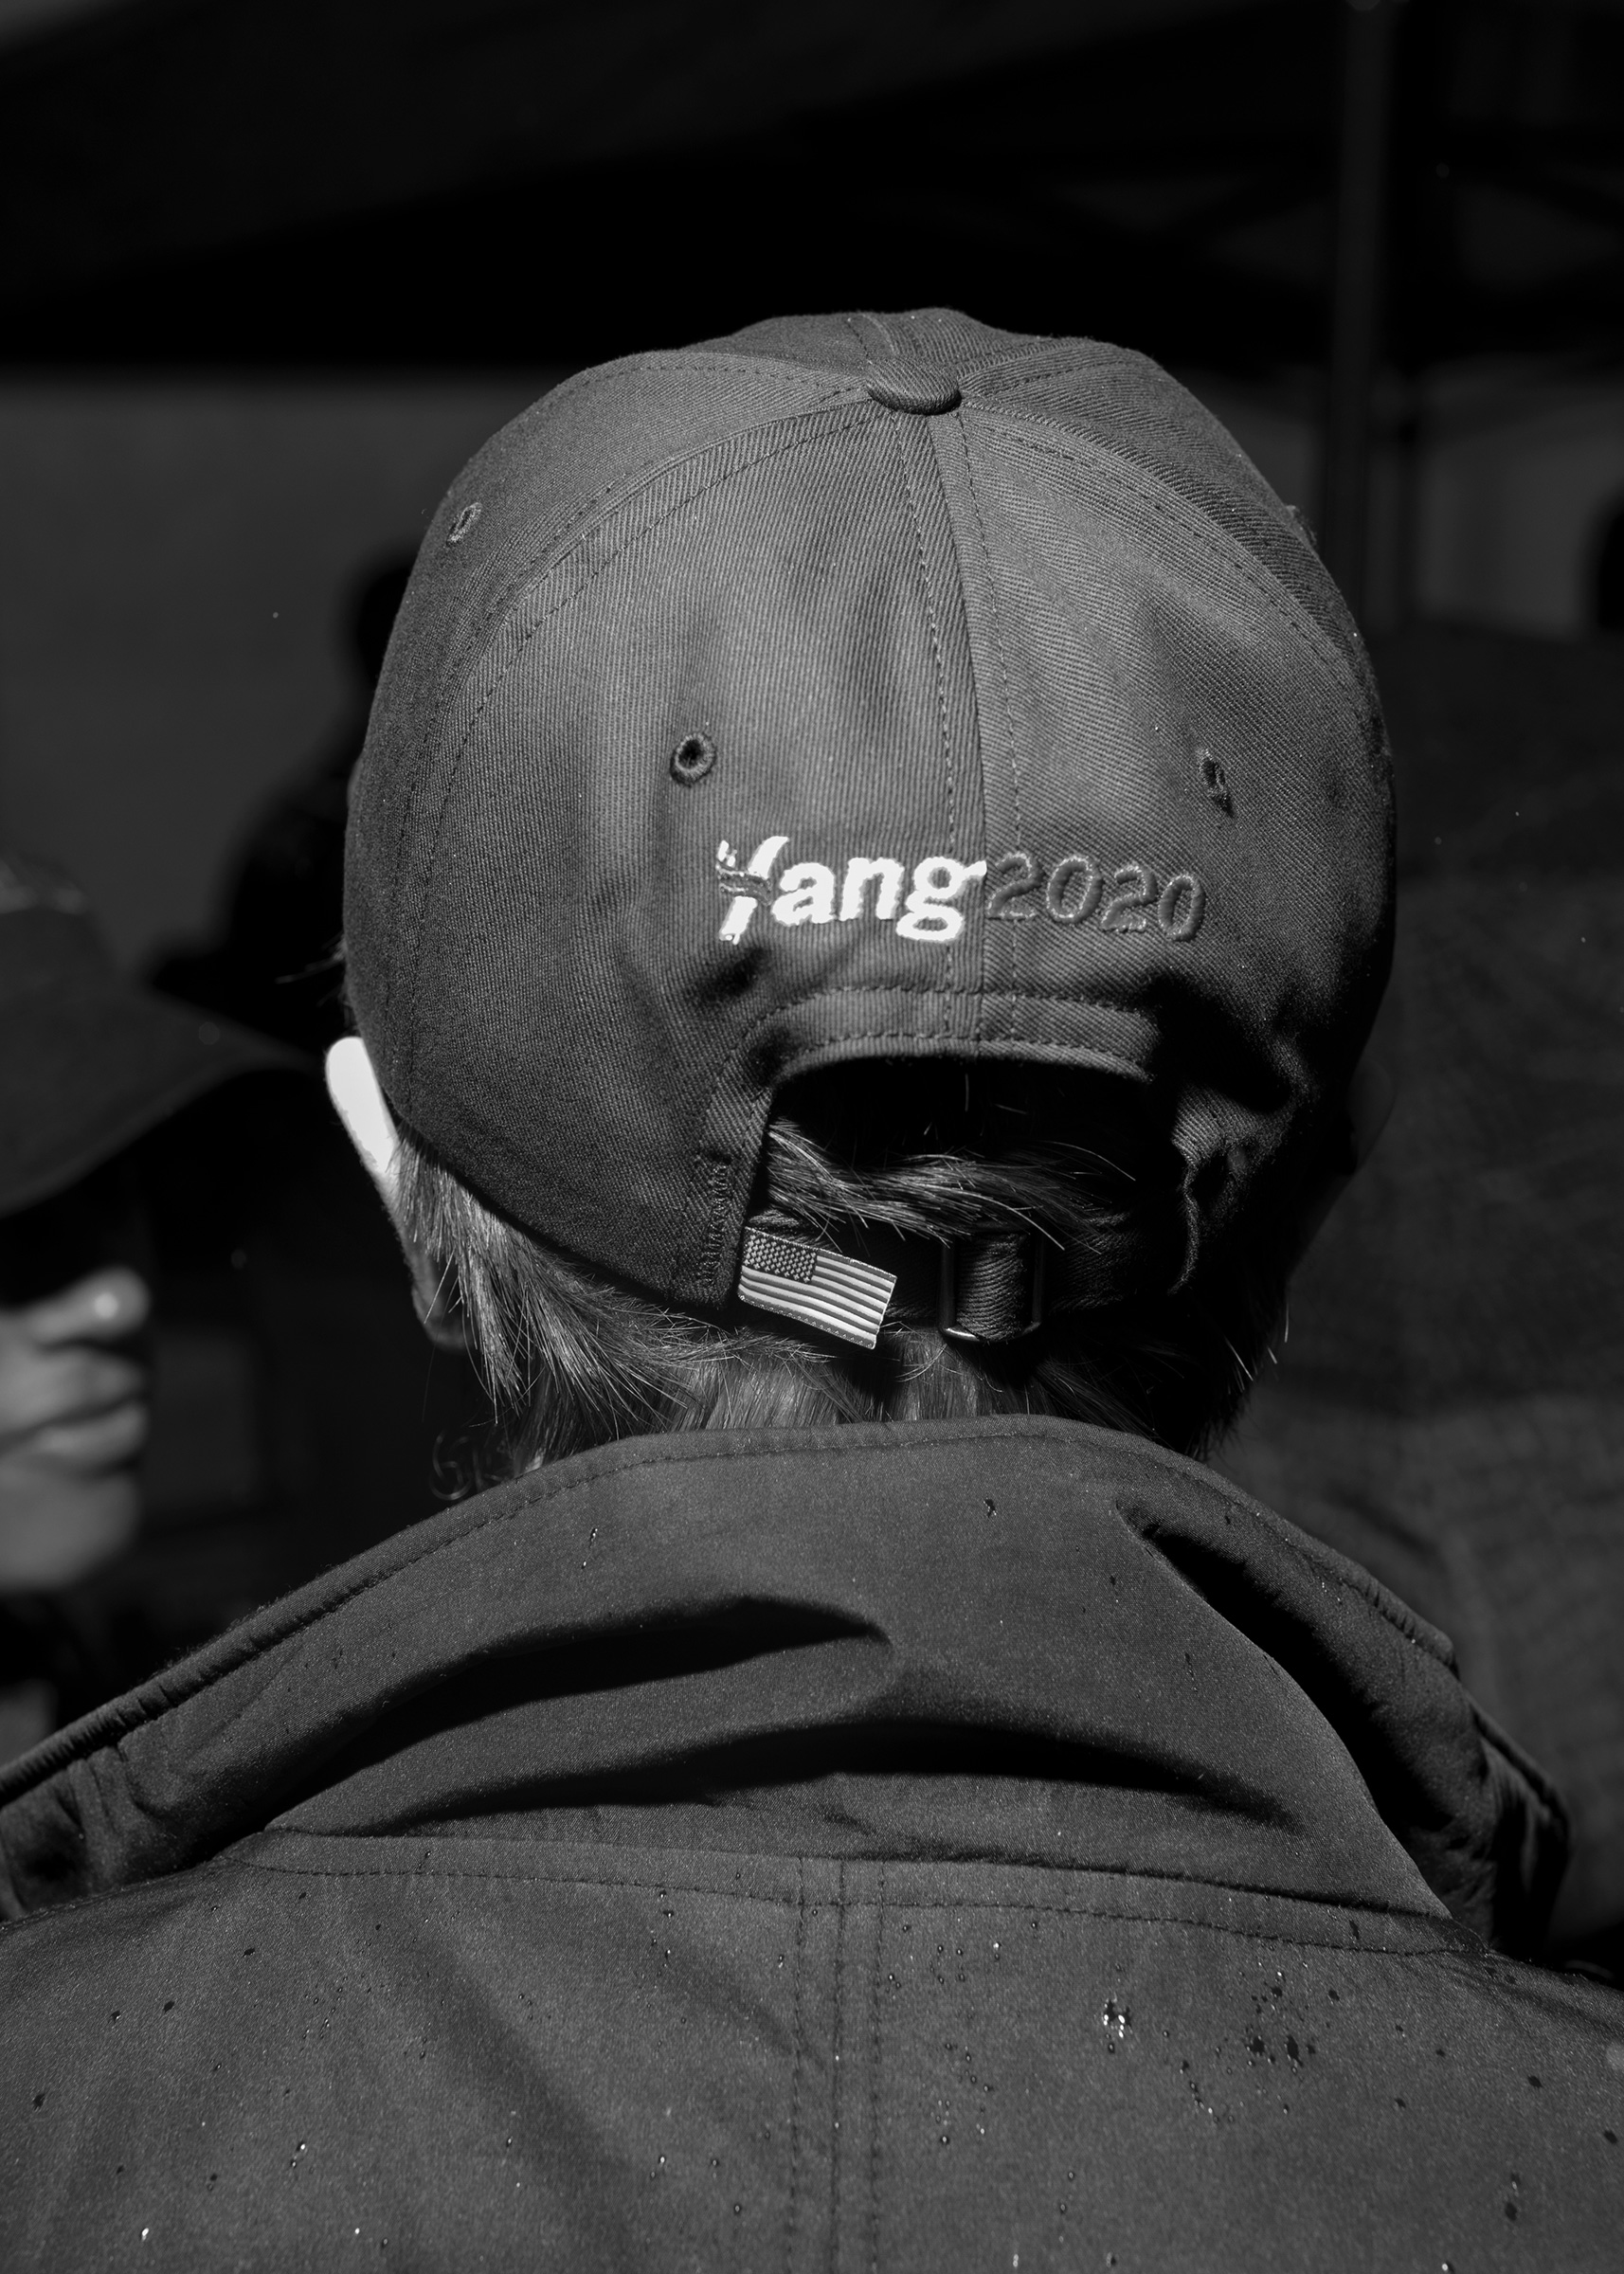 An Andrew Yang supporter at a rally in Washington Square Park, New York, May 14, 2019.